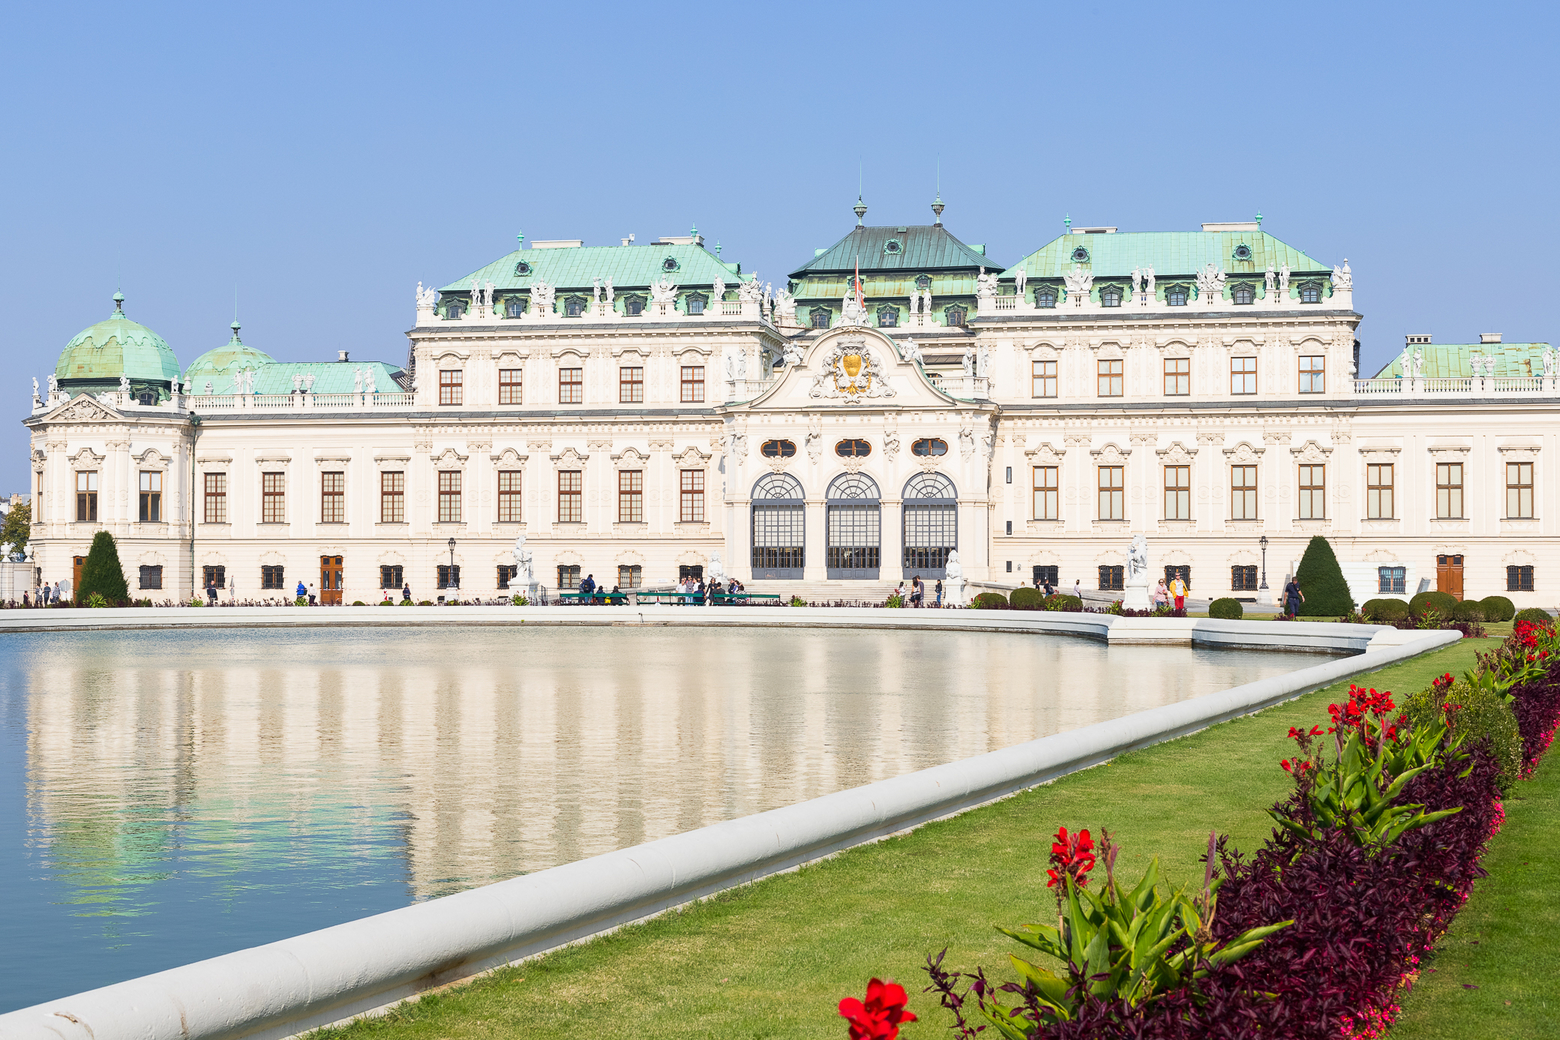 Belvedere Castle wedding venue in Vienna